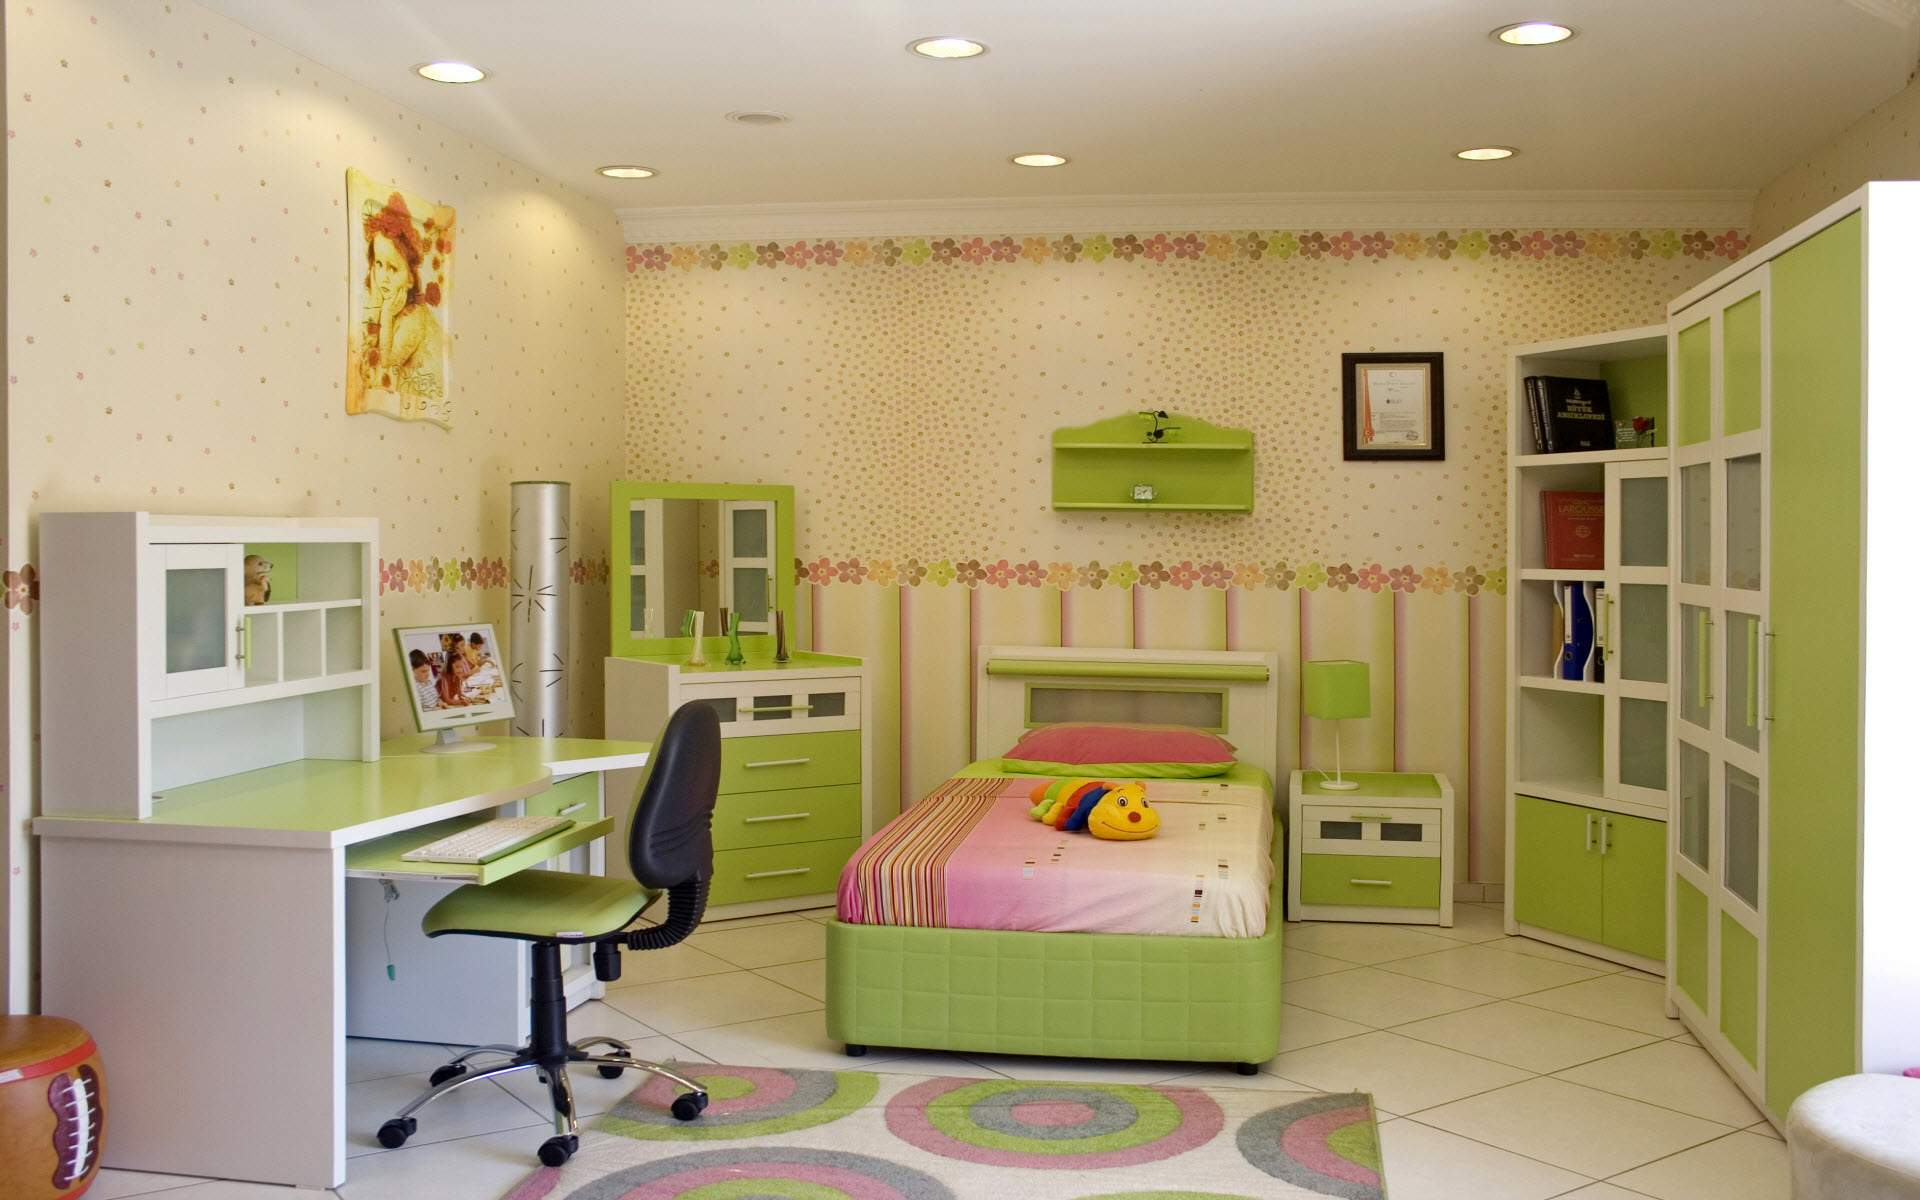 House design room - Bed Pillow Doll Cabinet Table Chair Rug Lamps Wallpaper